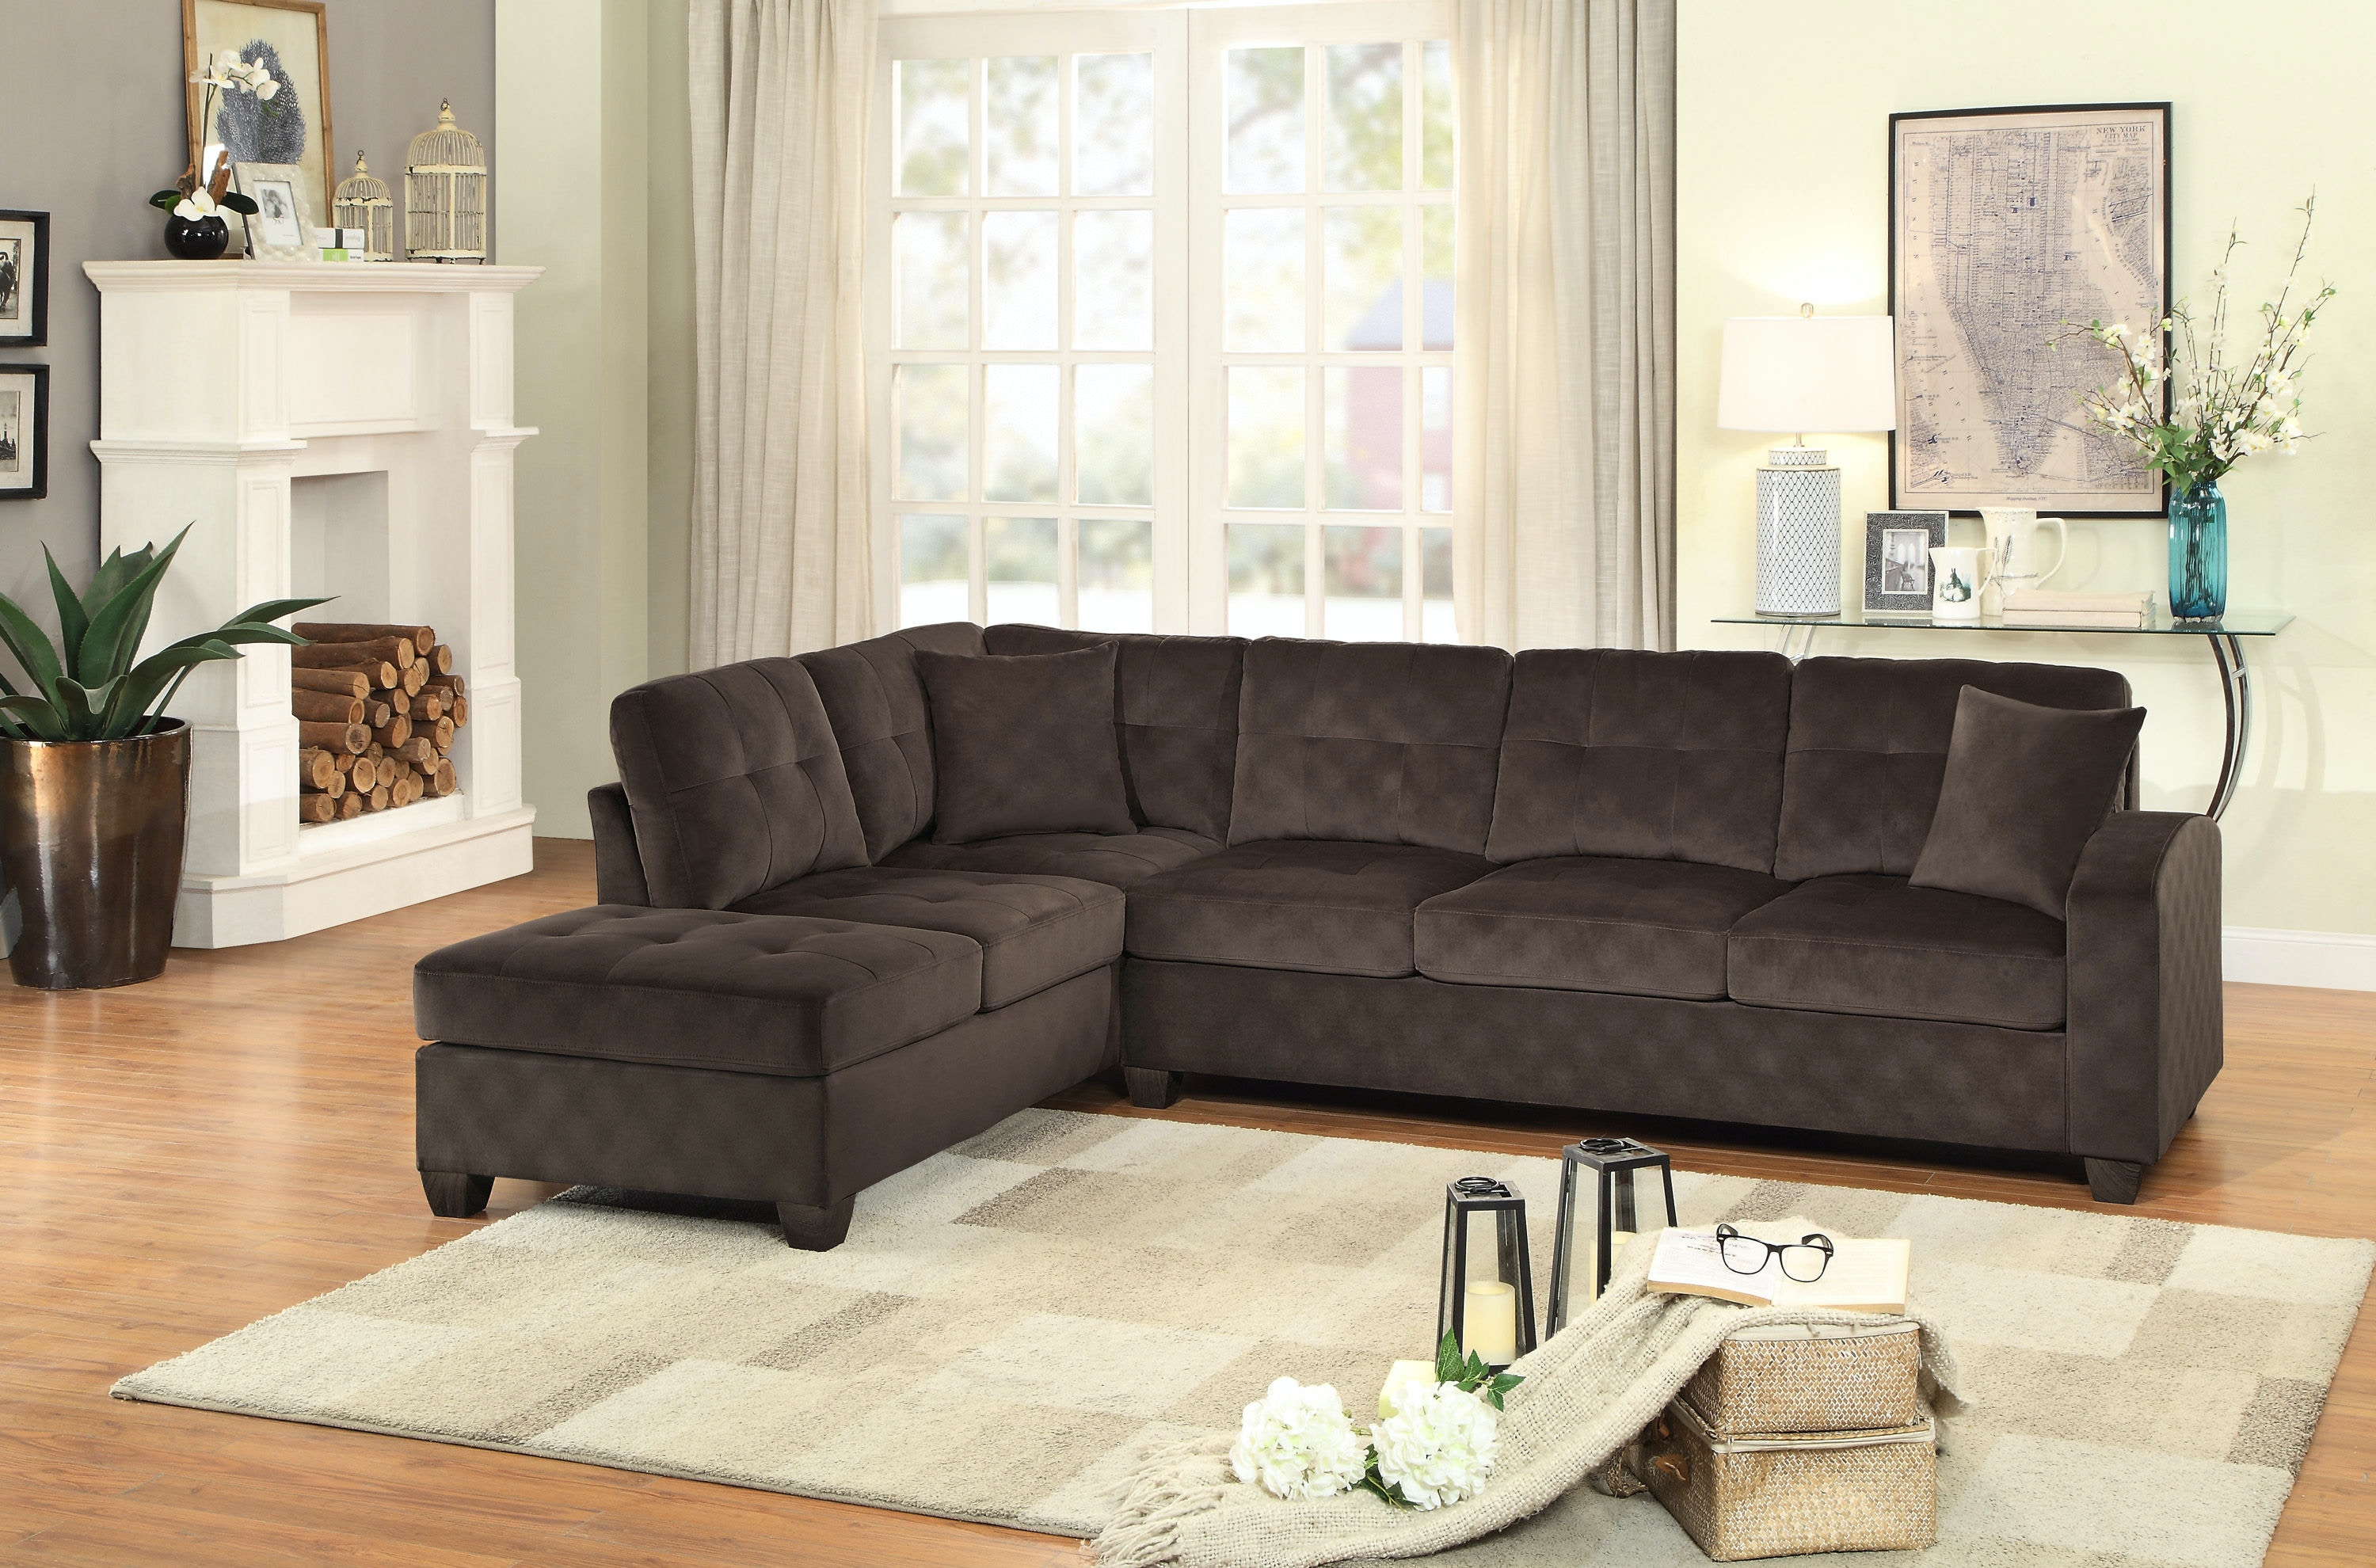 Homelegance Living Room 8367CH Sectional   D Noblin Furniture   Pearl And  Jackson, MS